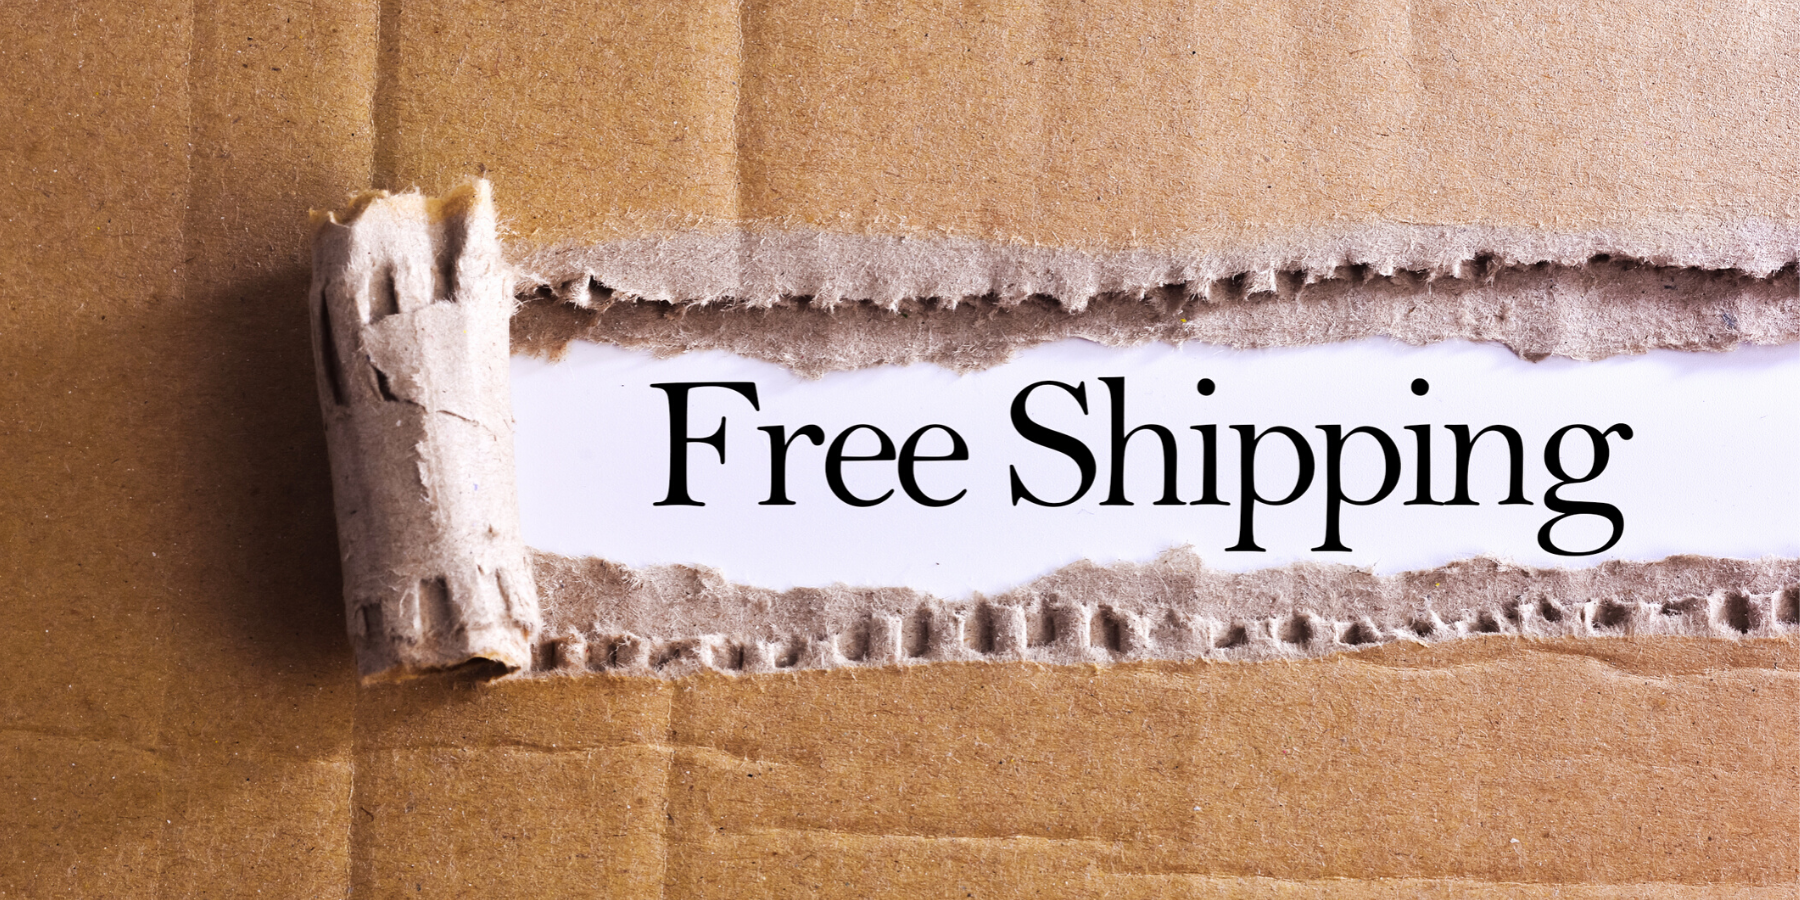 free-shipping-march-offer-page-banner.png